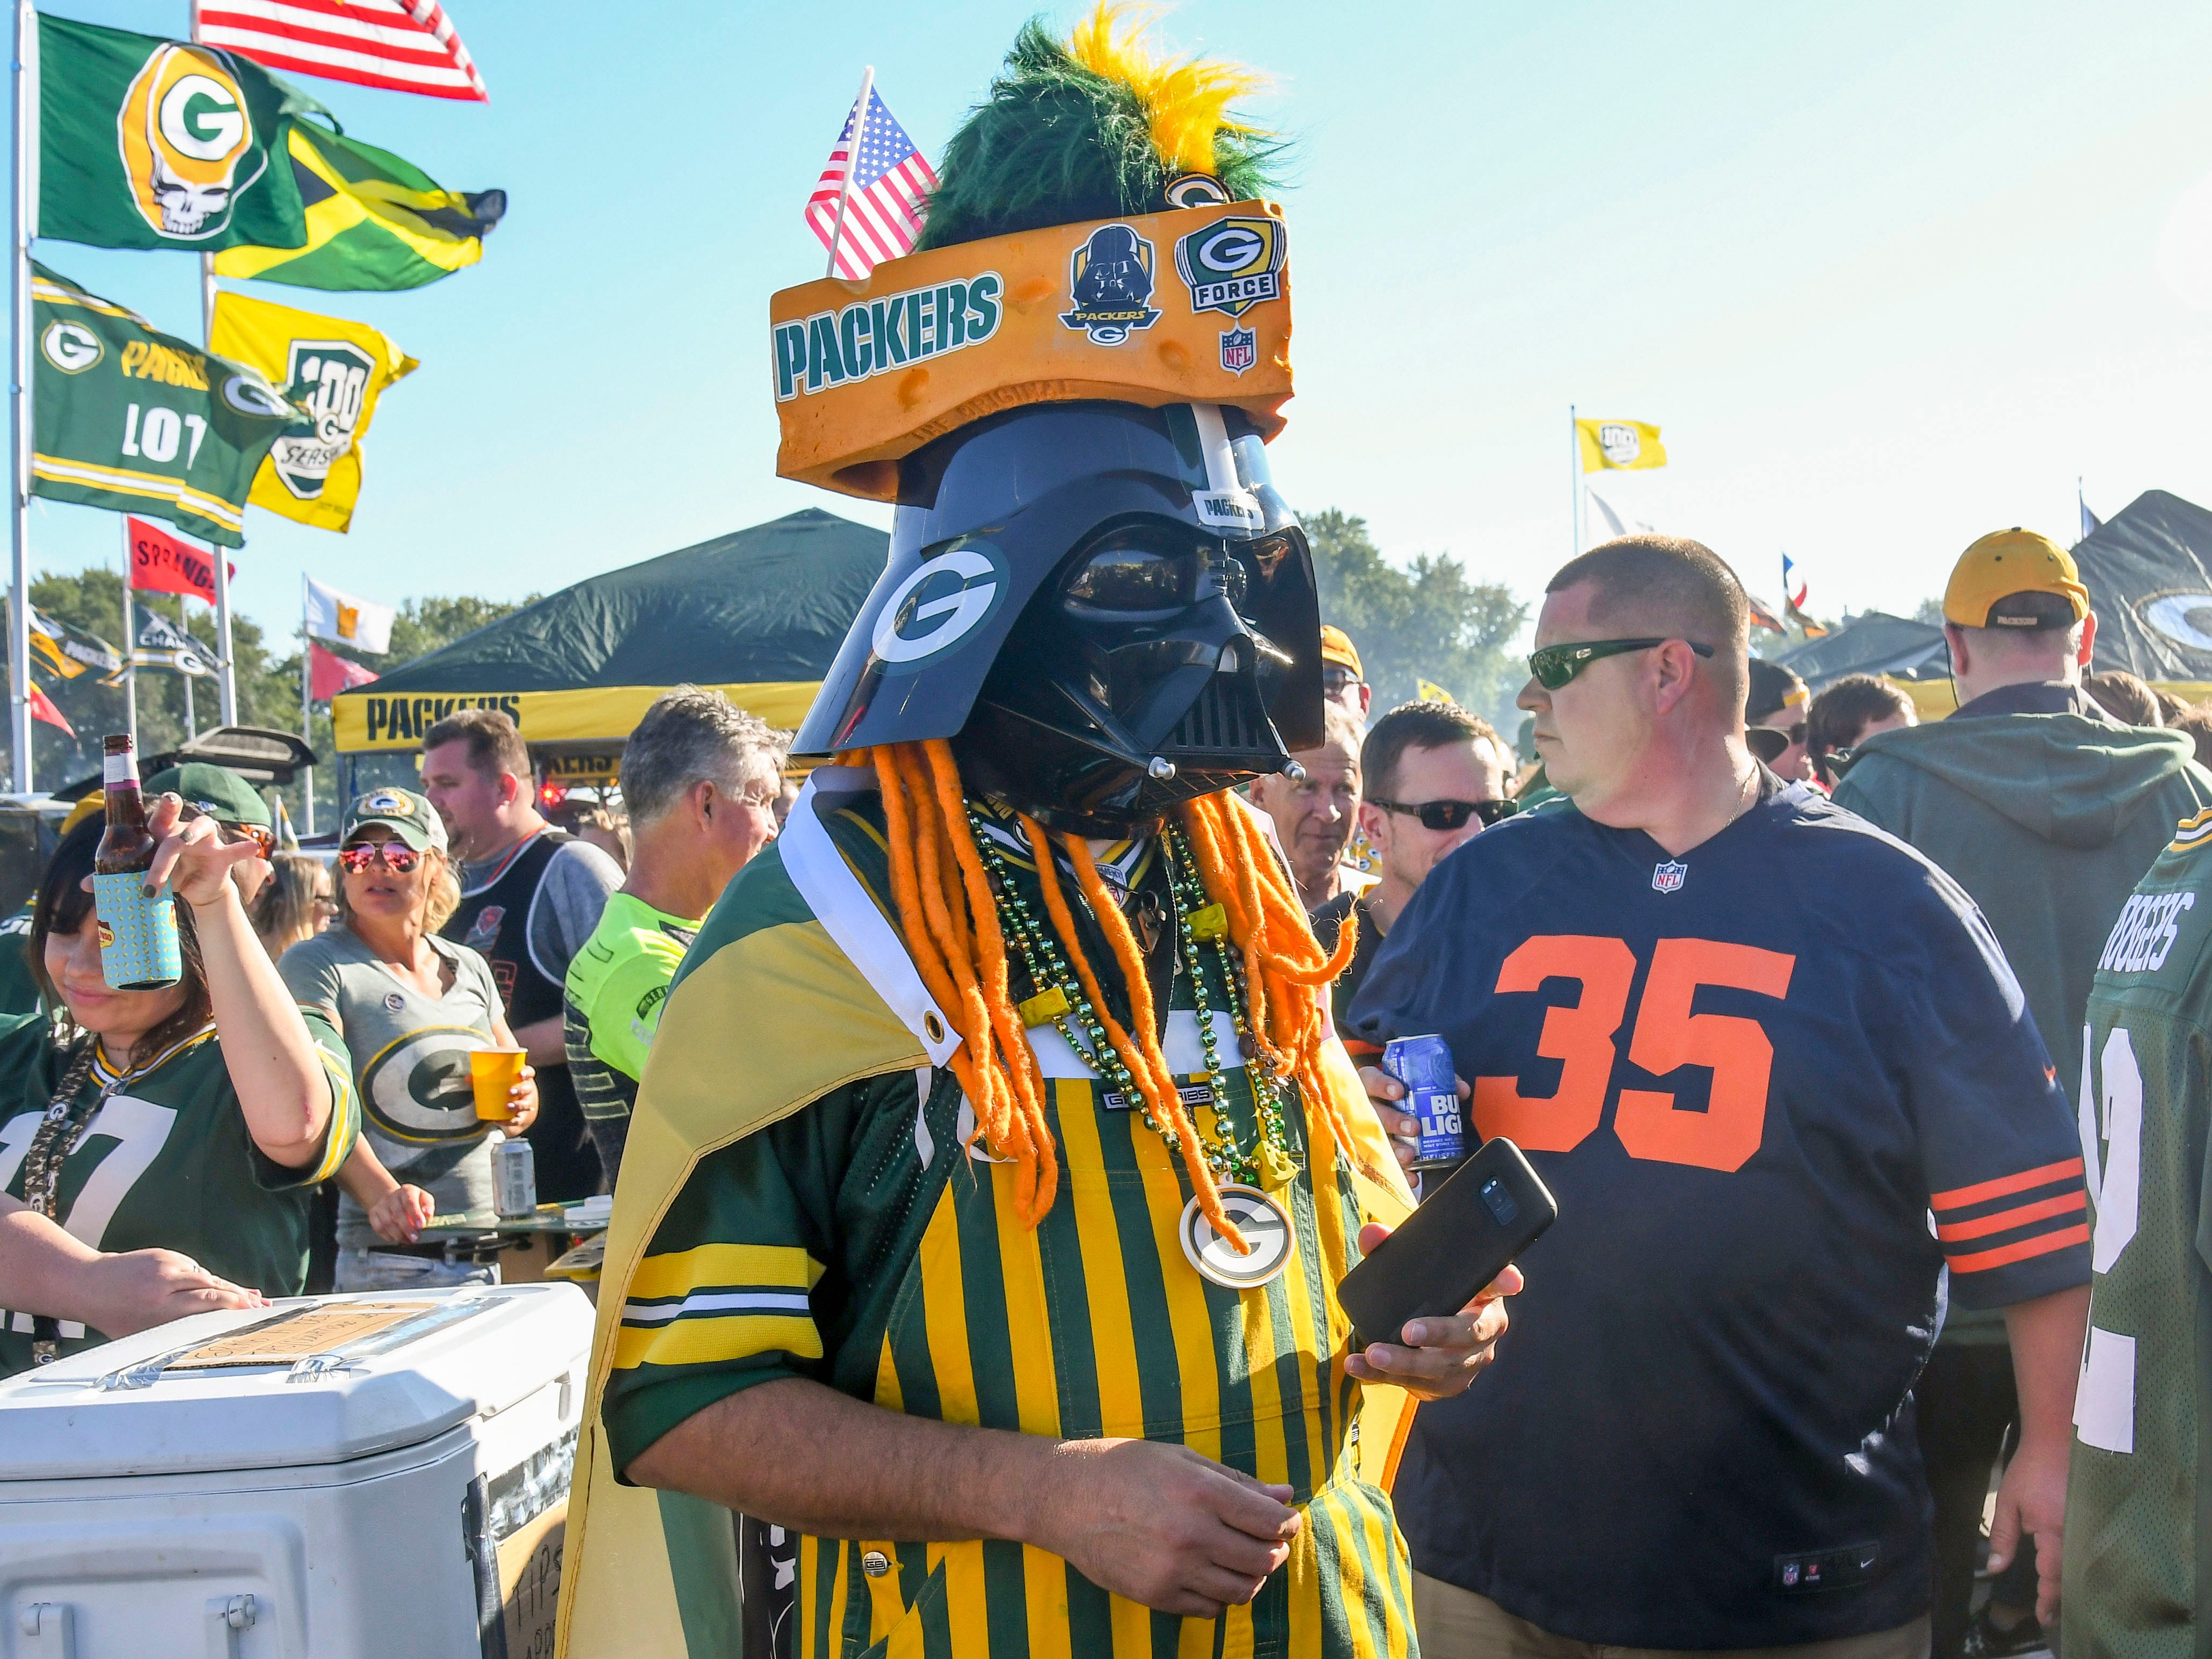 Sep 9, 2018; Green Bay, WI, USA; Fans tailgate before a game between the Green Bay Packers and Chicago Bears at Lambeau Field. Mandatory Credit: Benny Sieu-USA TODAY Sports